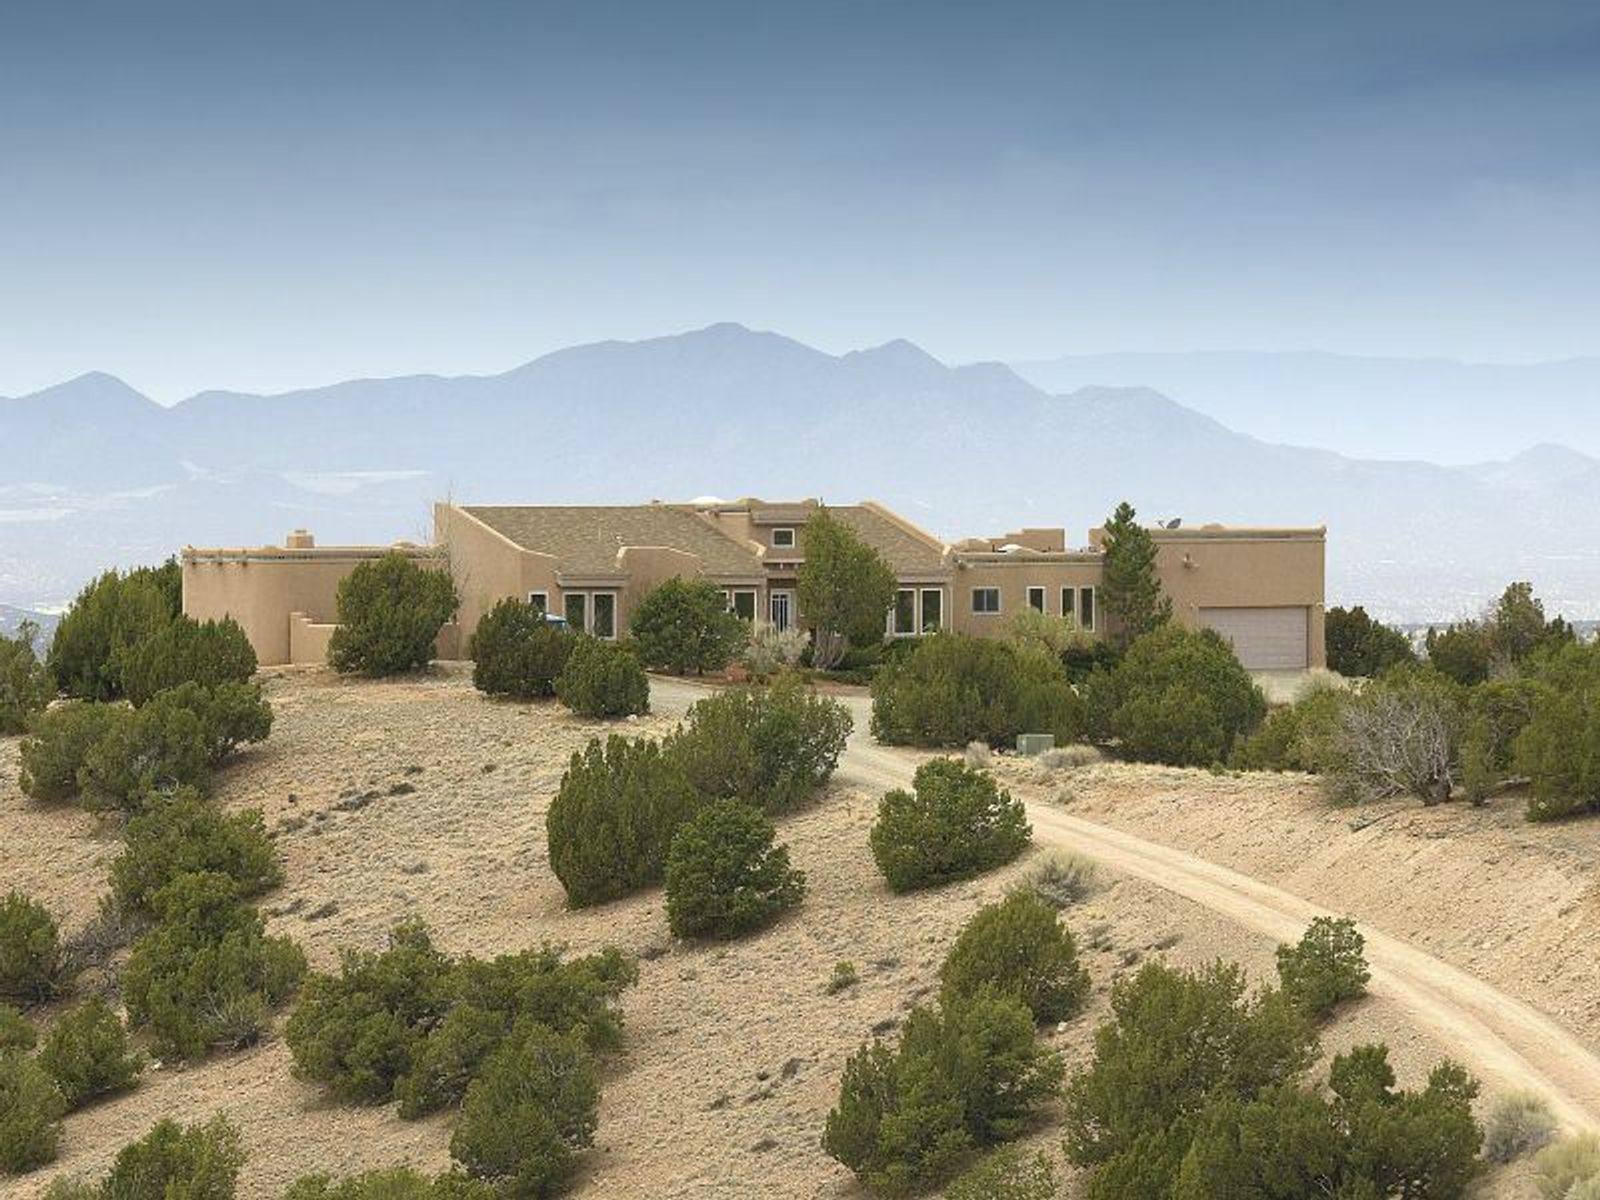 41 Lamy Crest Drive, Lamy NM Single Family Home - Santa Fe Real Estate